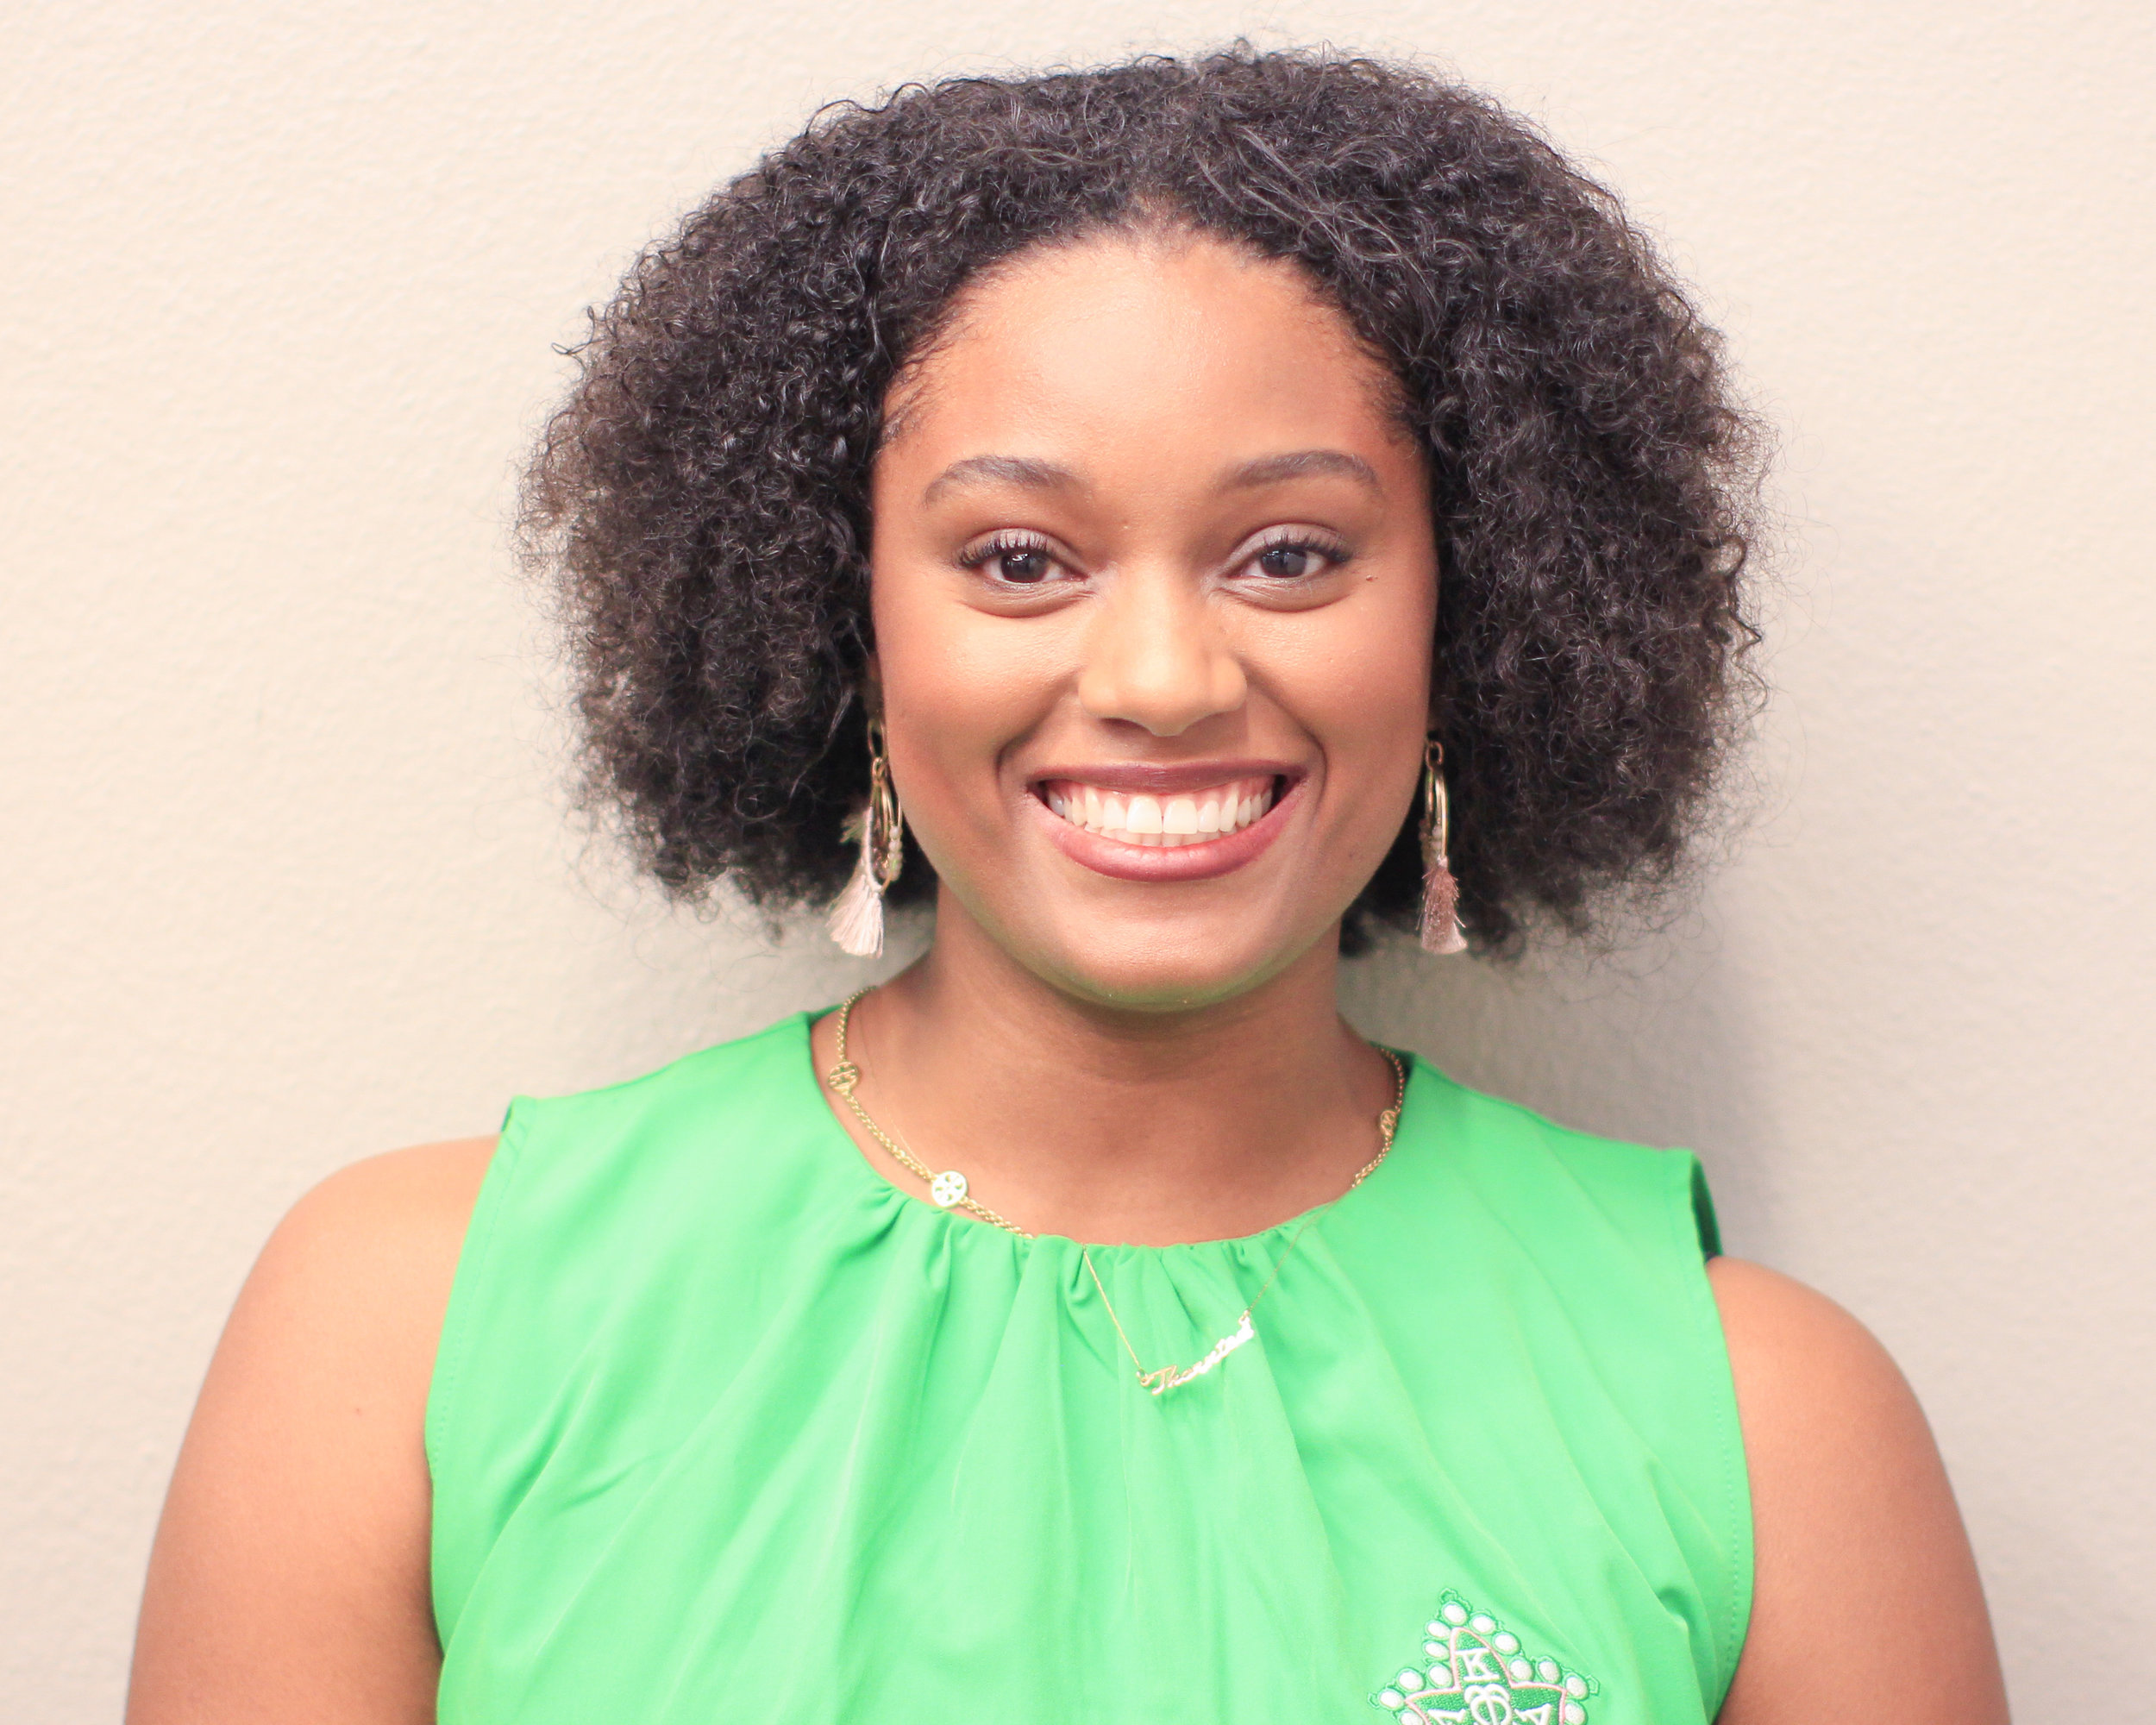 Shawna Smith-Thornton, Program Coordinator, Texas A&M University School of Law